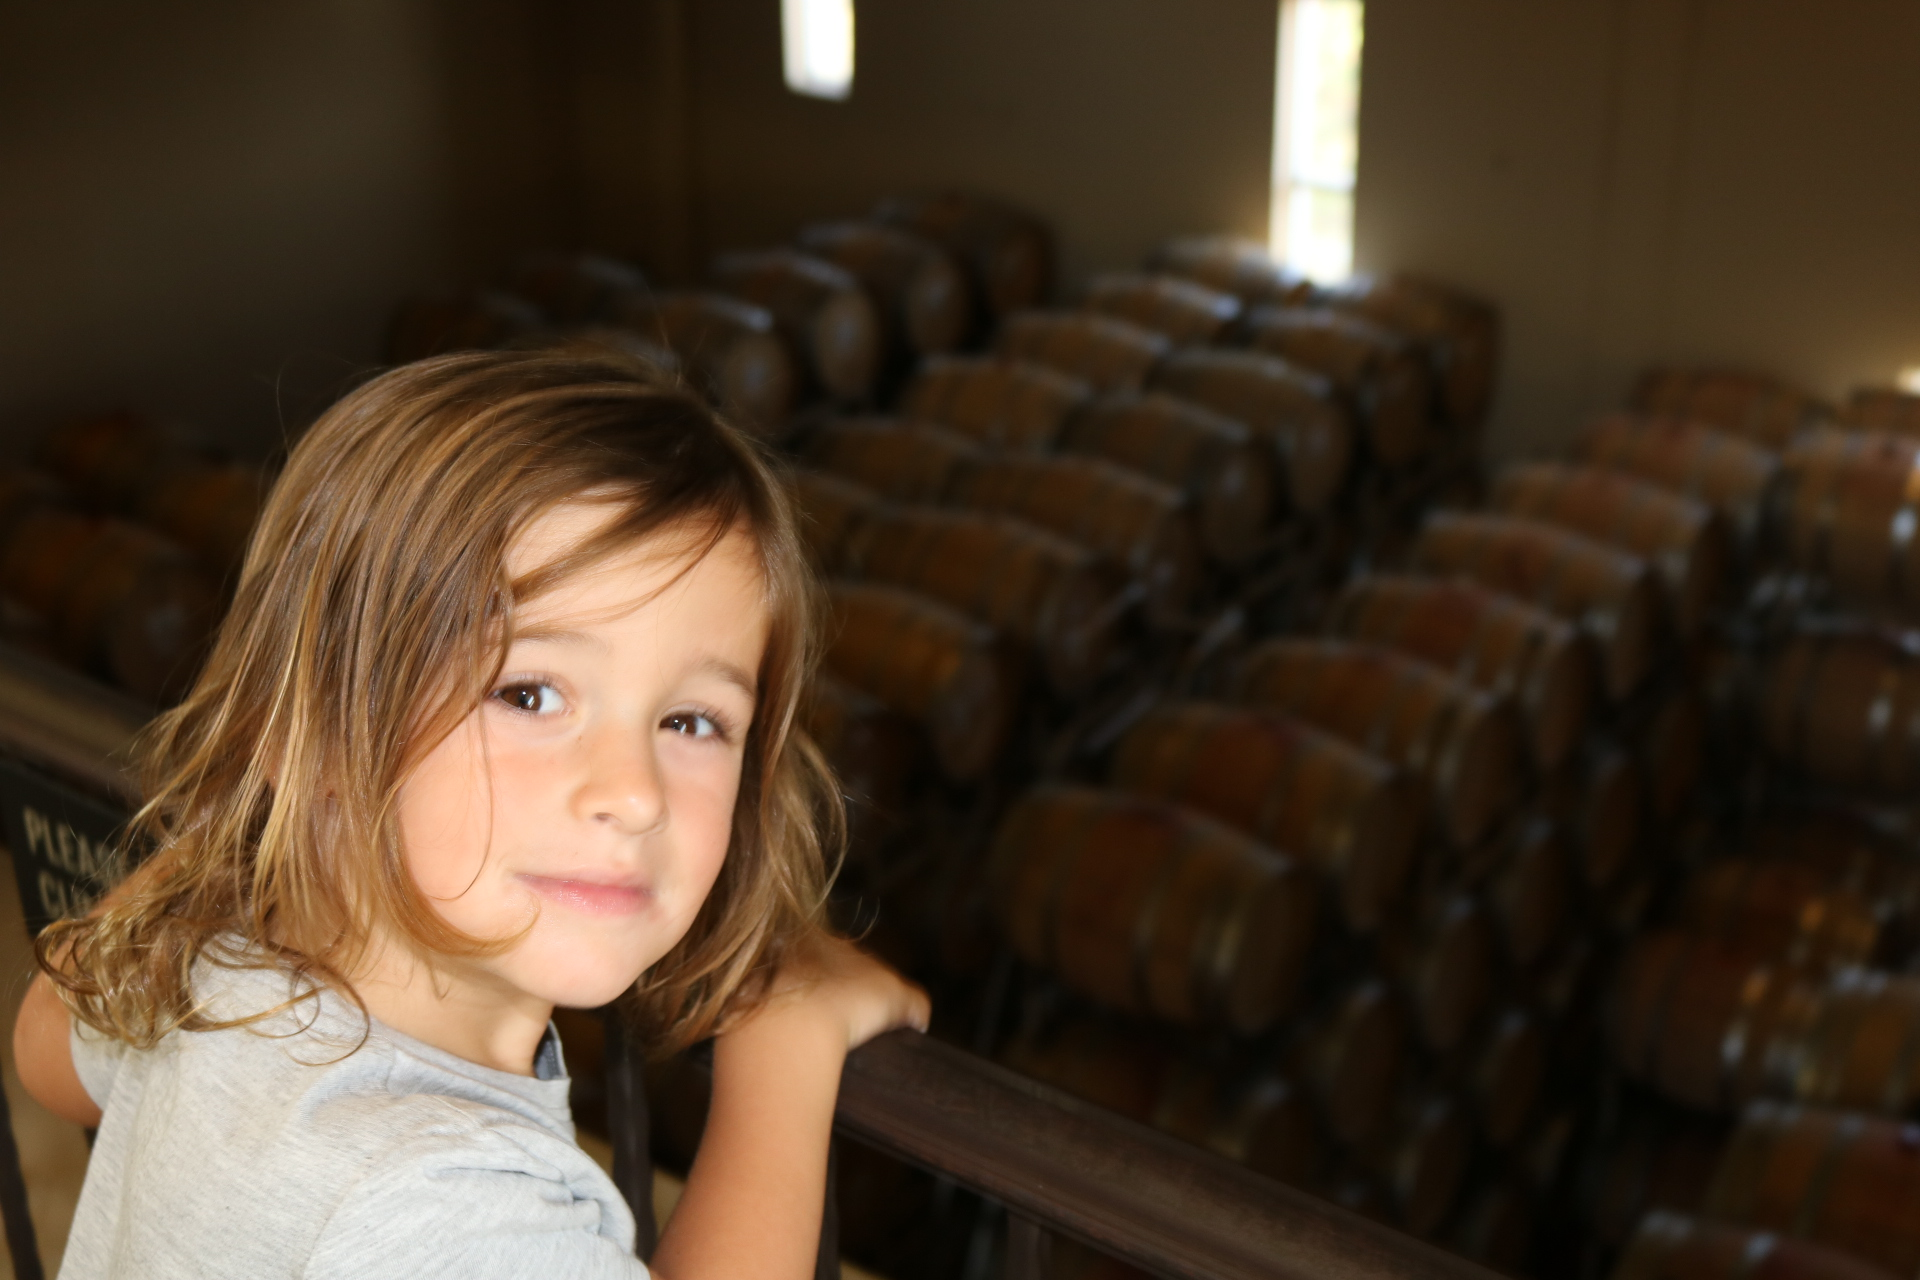 Touring the wine barrels